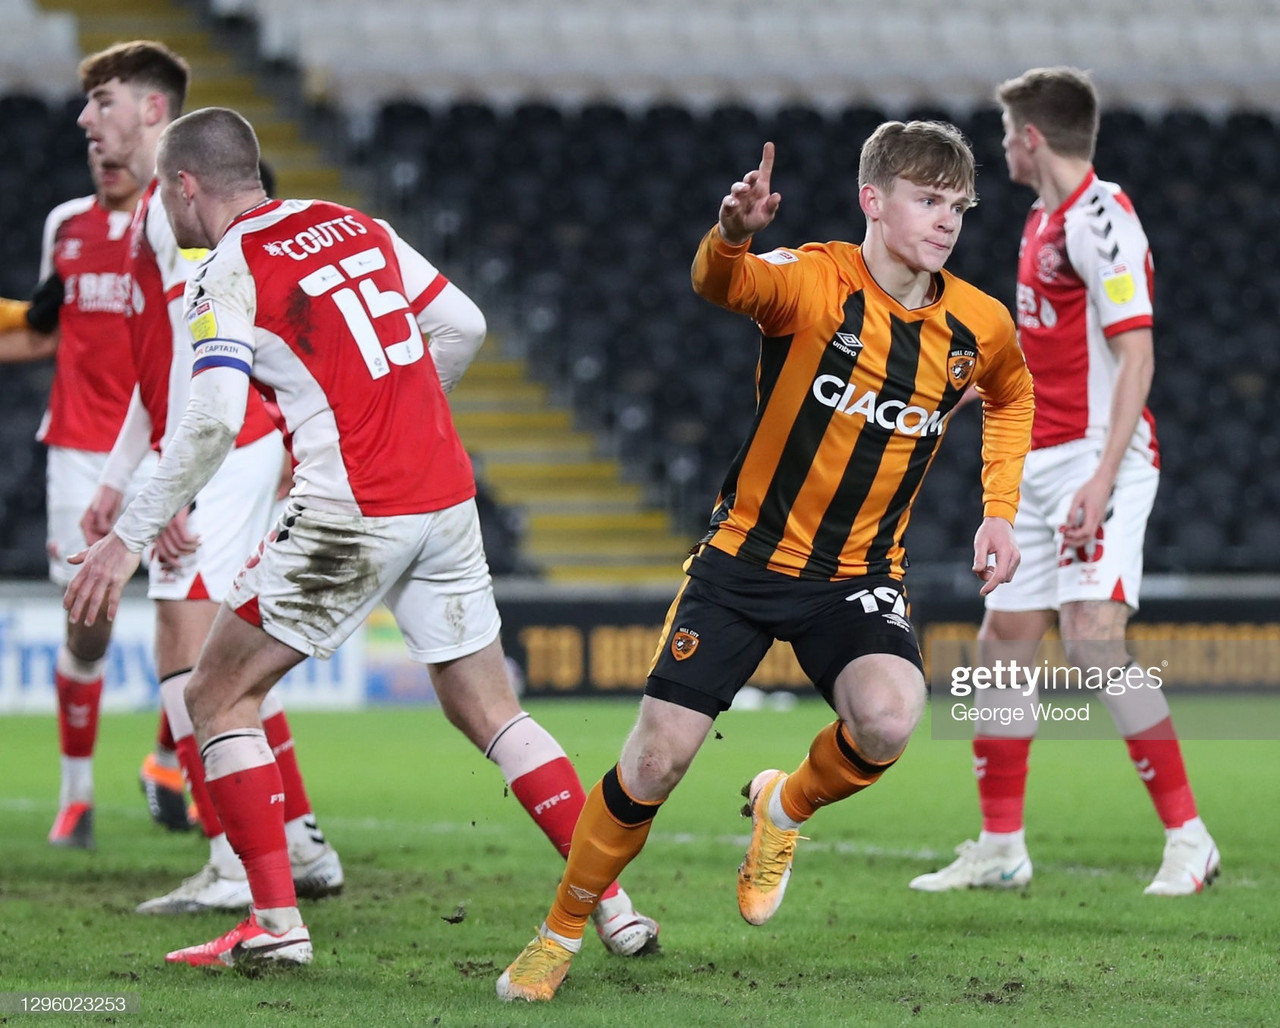 Hull City 3-2 Fleetwood Town: Late show from the Tigers see them through to the last eight